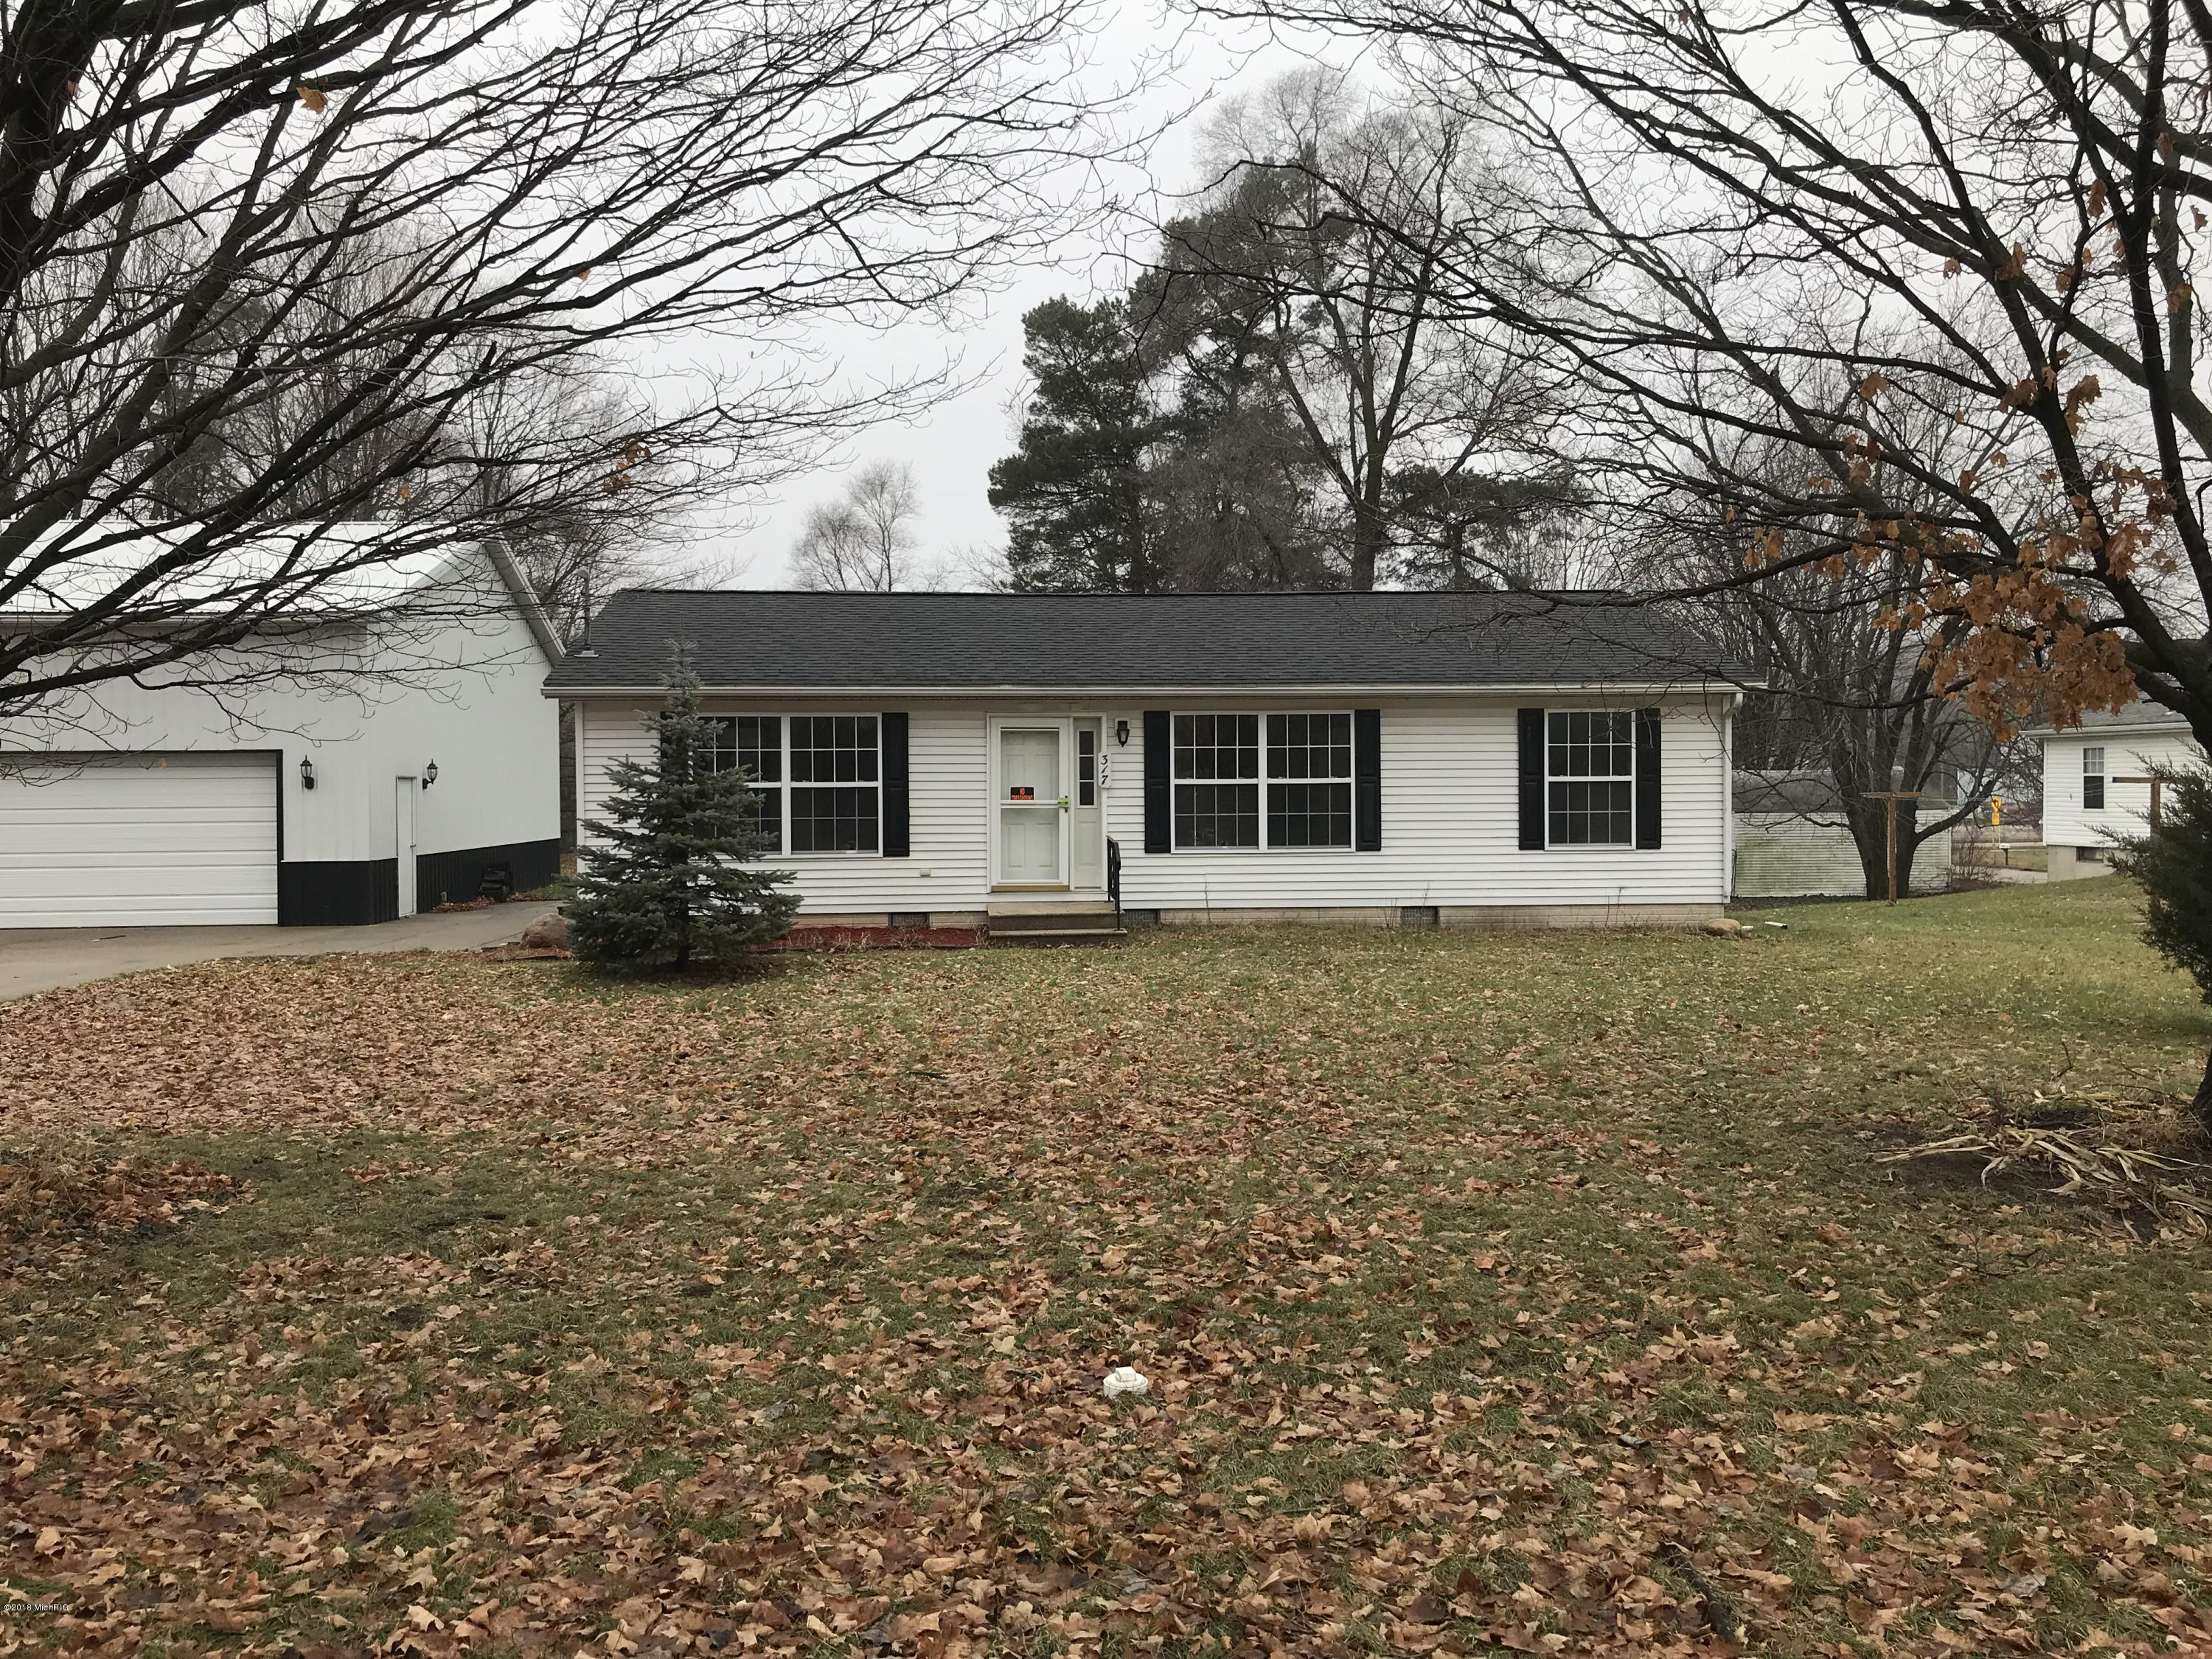 Photo for 317 E Sherwood Street, Decatur, MI 49045 (MLS # 18058425)